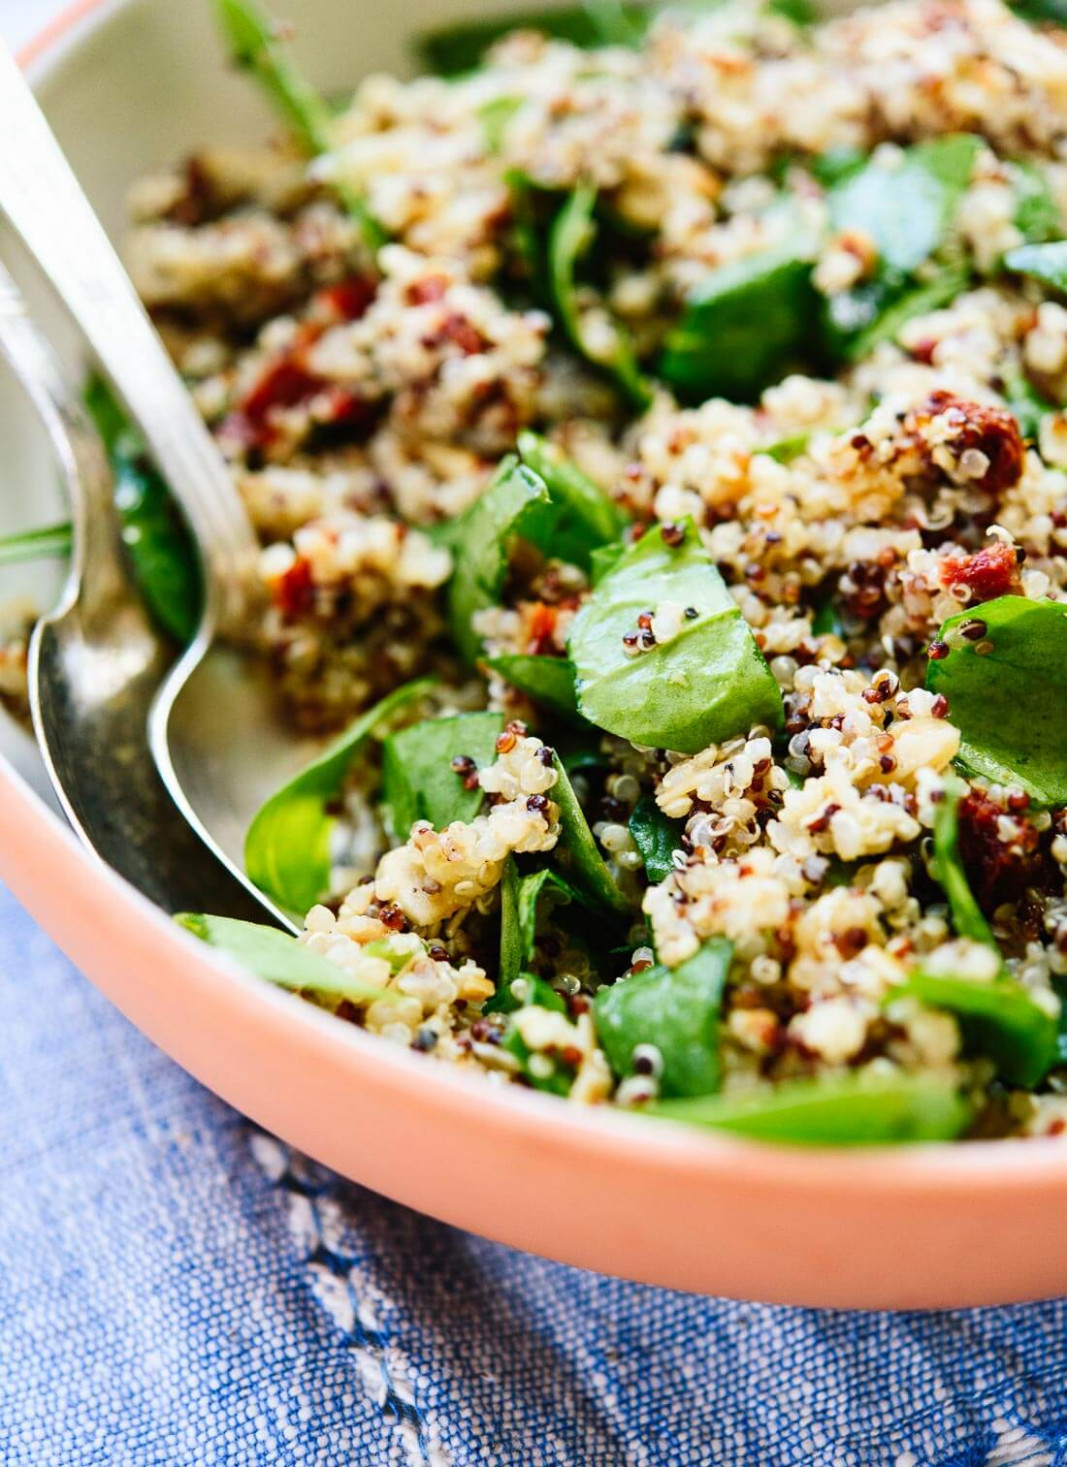 Sun-Dried Tomato, Spinach and Quinoa Salad - Cookie and Kate